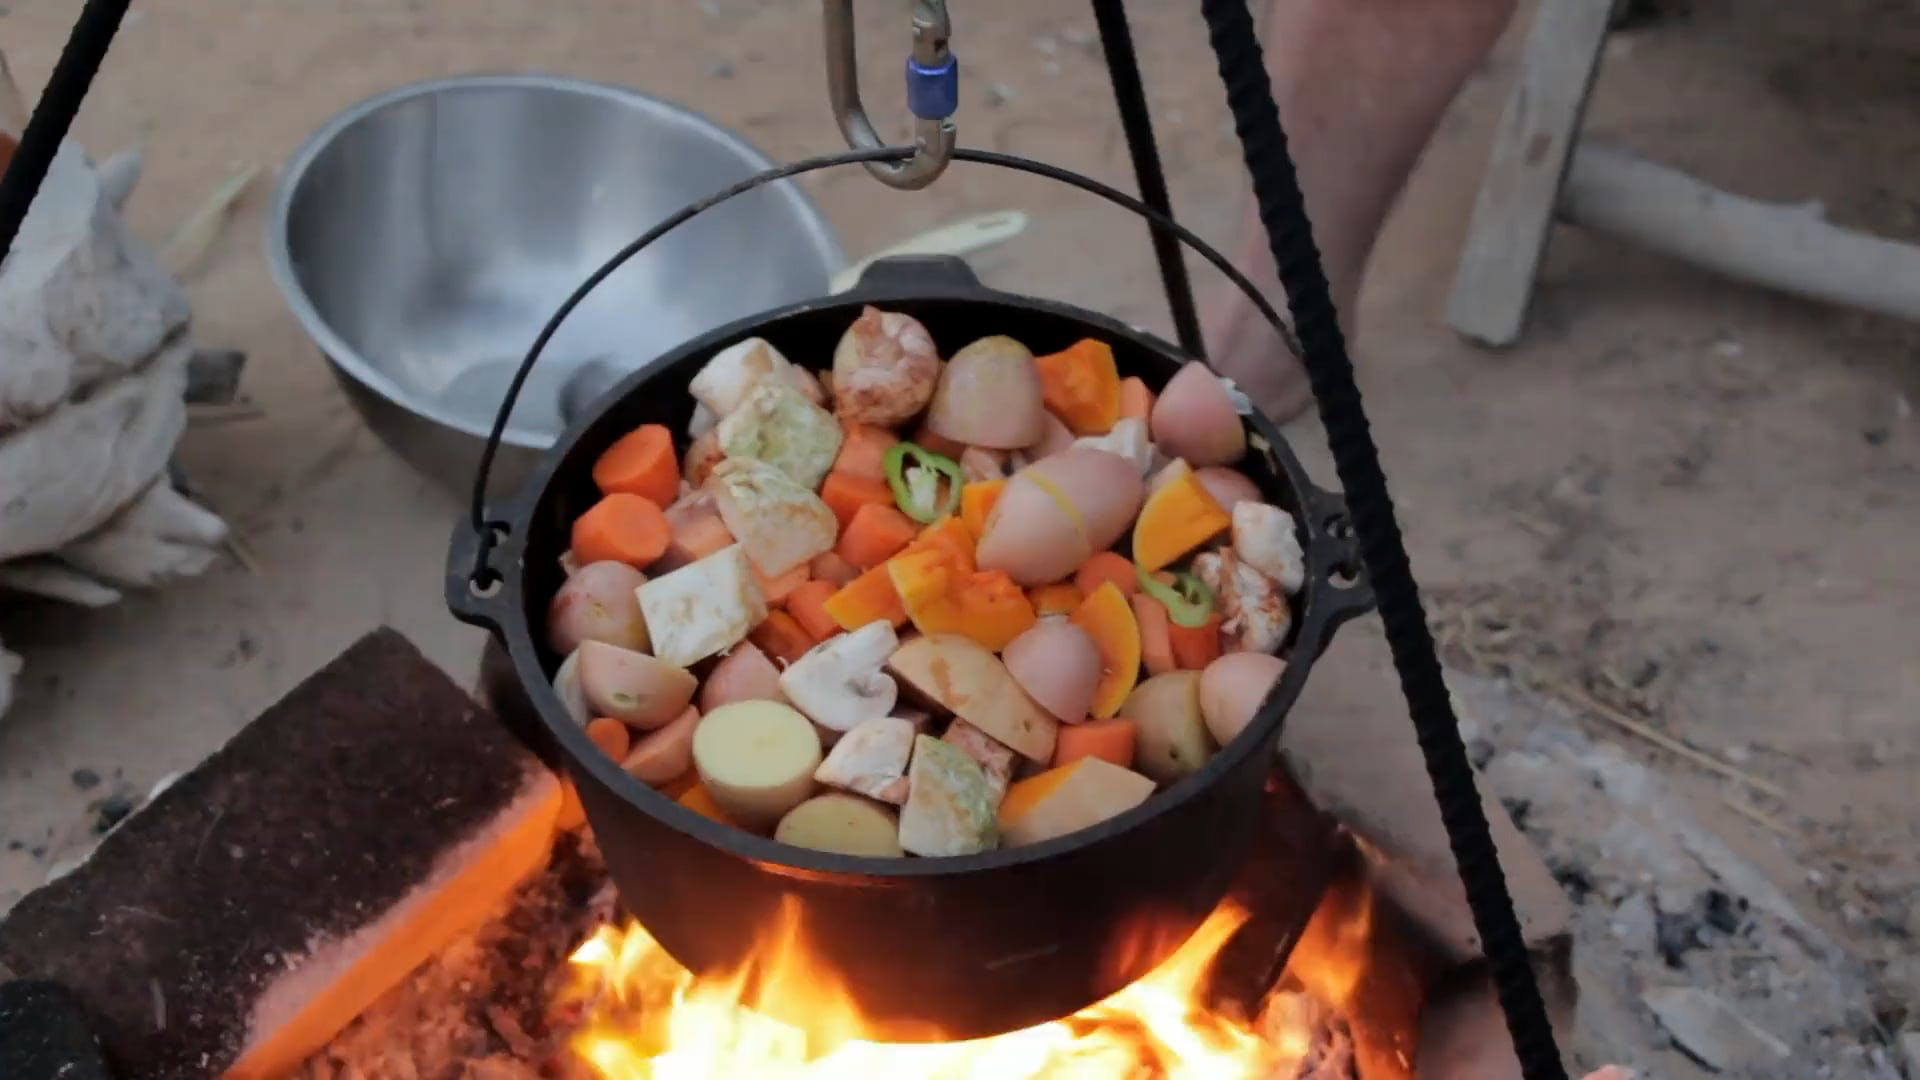 Cooking Vegetables with Wine in a Pot